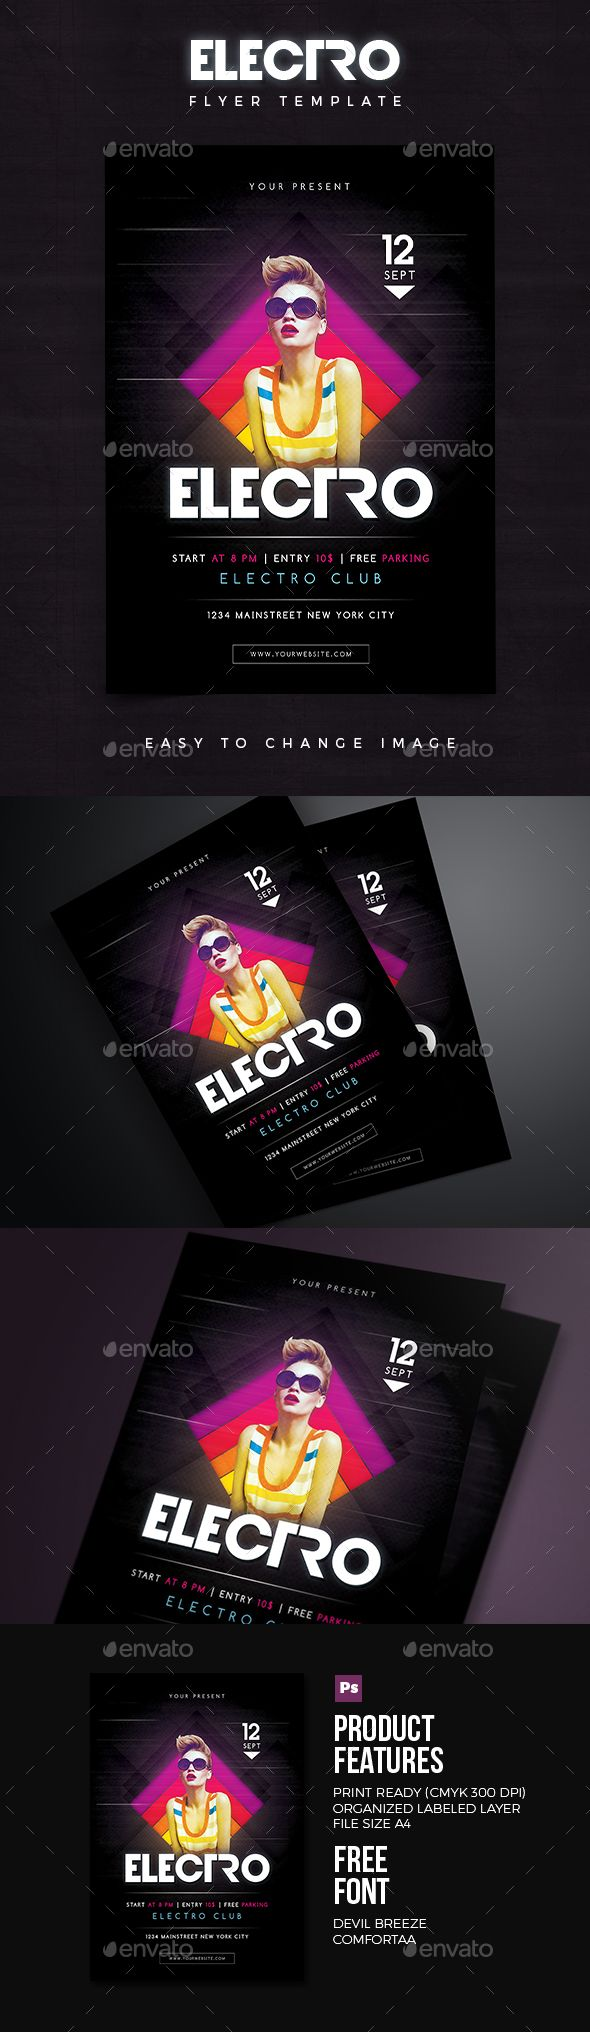 Electro Flyer 02  — PSD Template #space #concert • Download ➝ https://graphicriver.net/item/electro-flyer-02/18394879?ref=pxcr